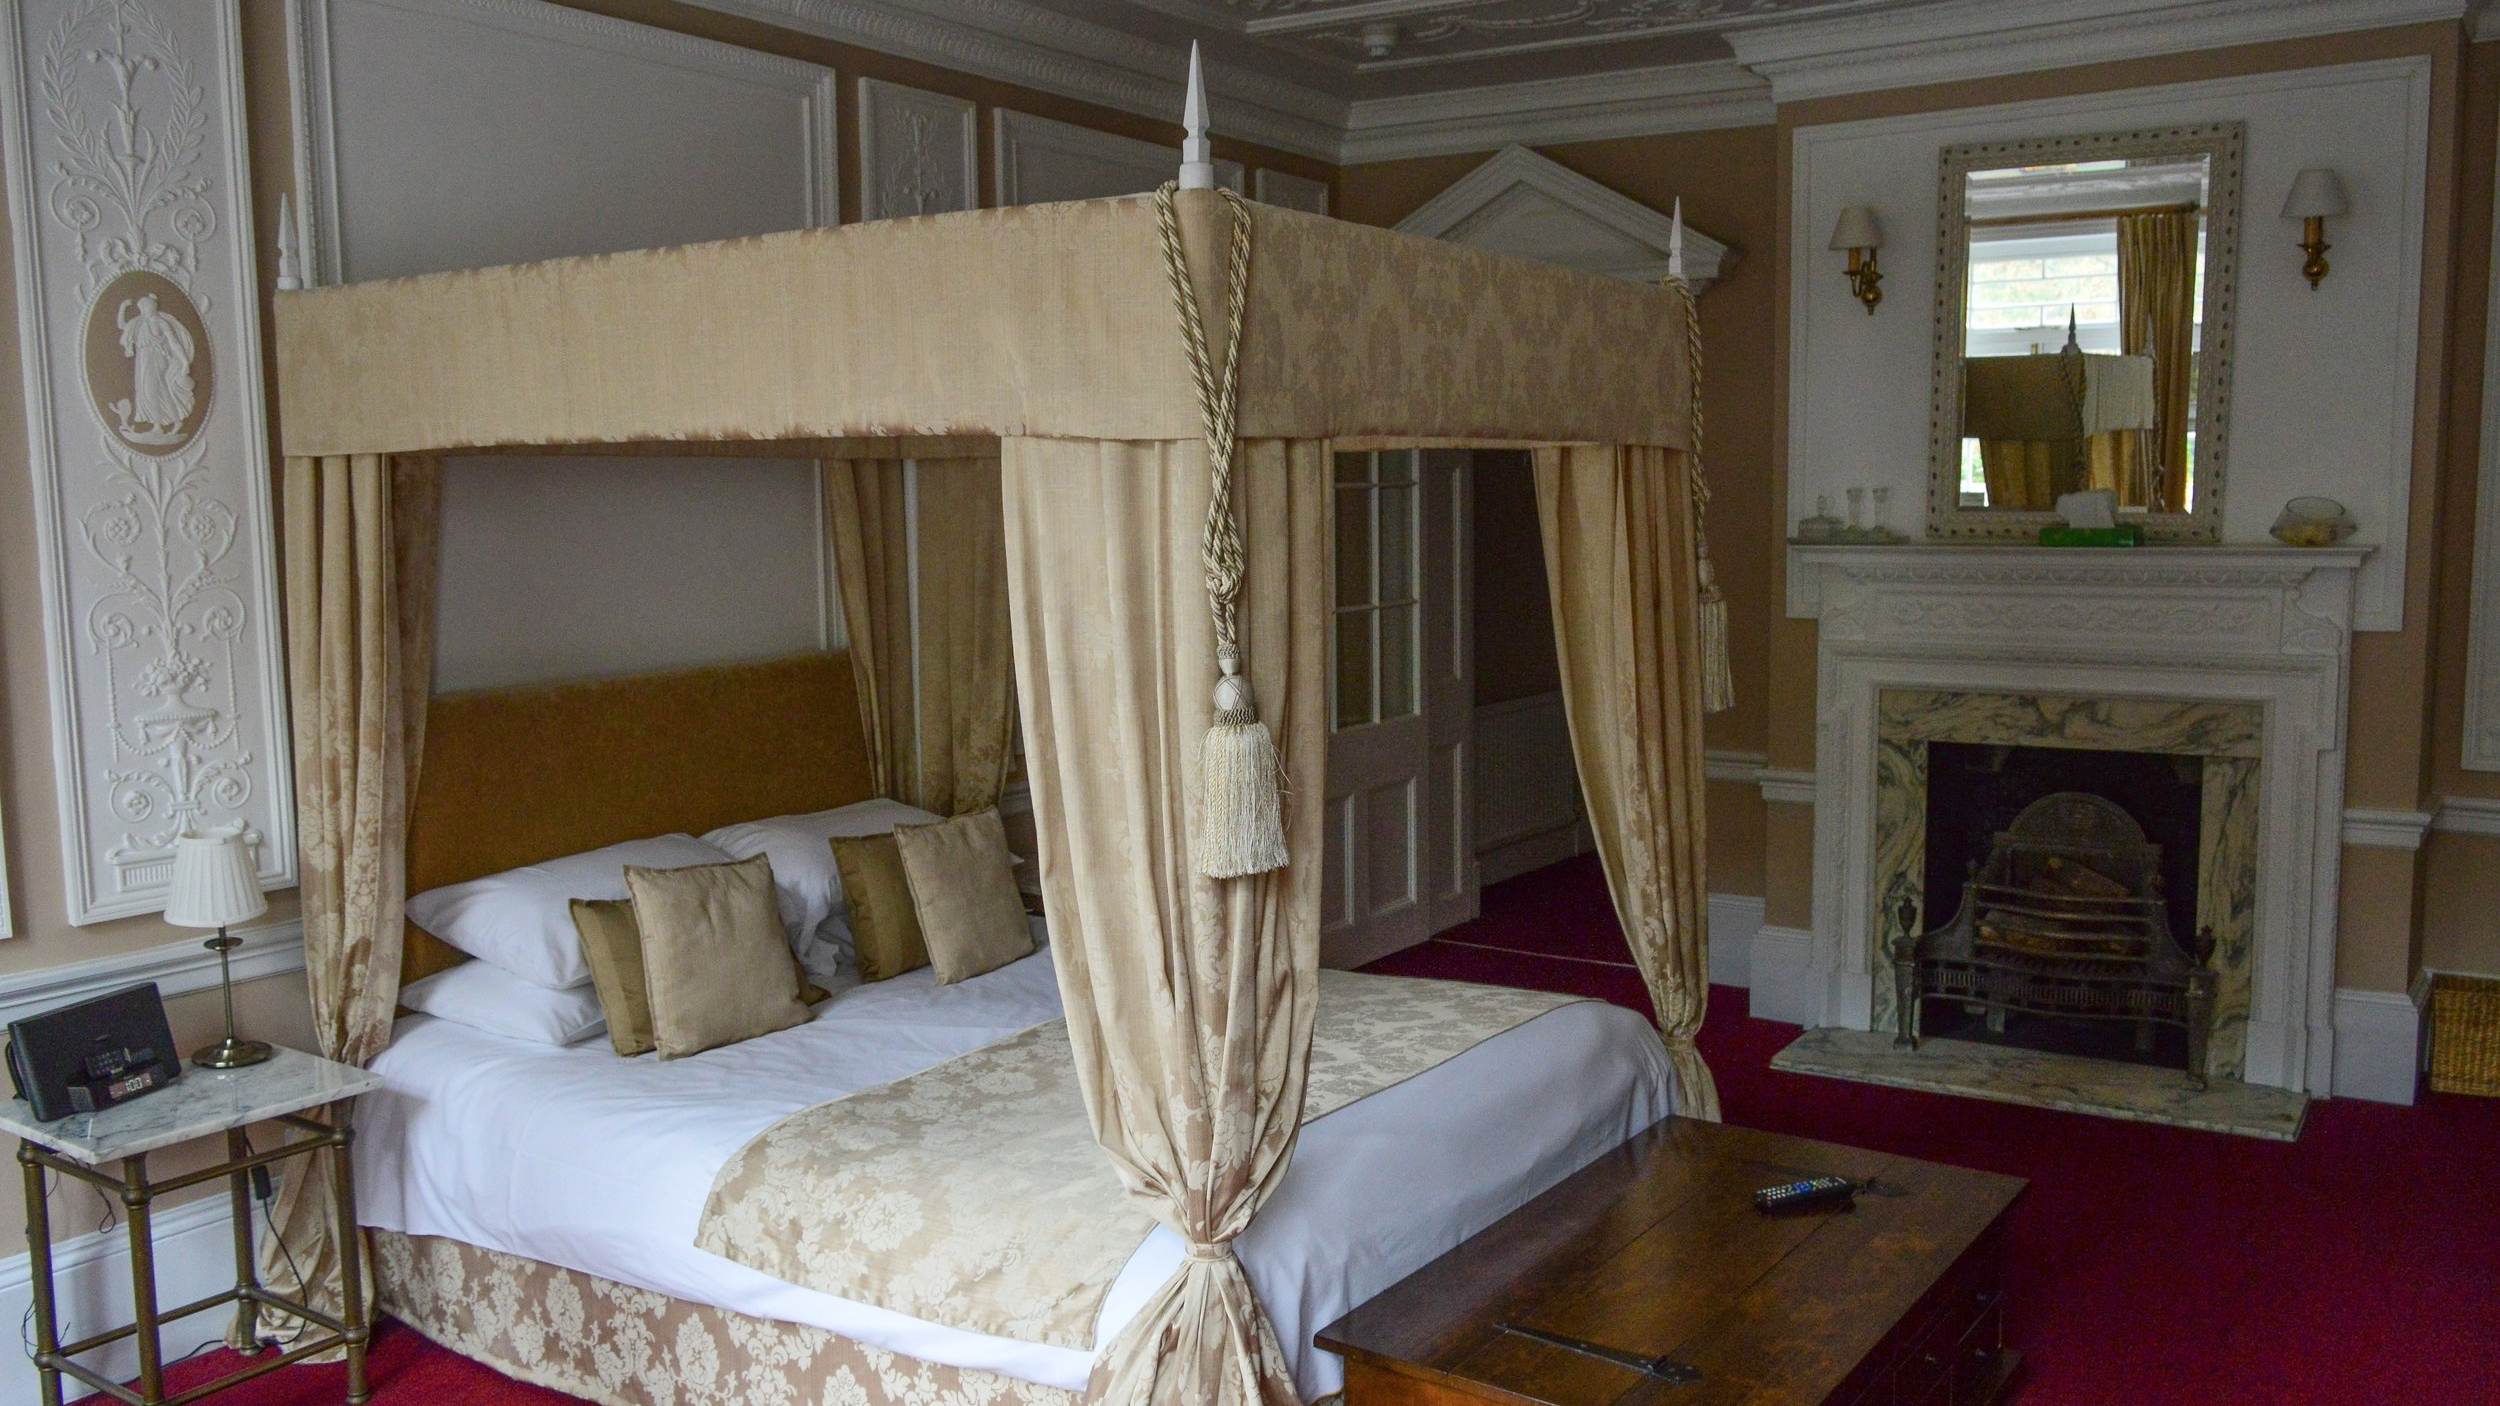 Bay - The Suite £150 per night (April - October)£110 per night (November - March)A truly splendid room furnished with 4 poster Kingsize bed, with its own private balcony overlooking the walls of Arundel Castle.